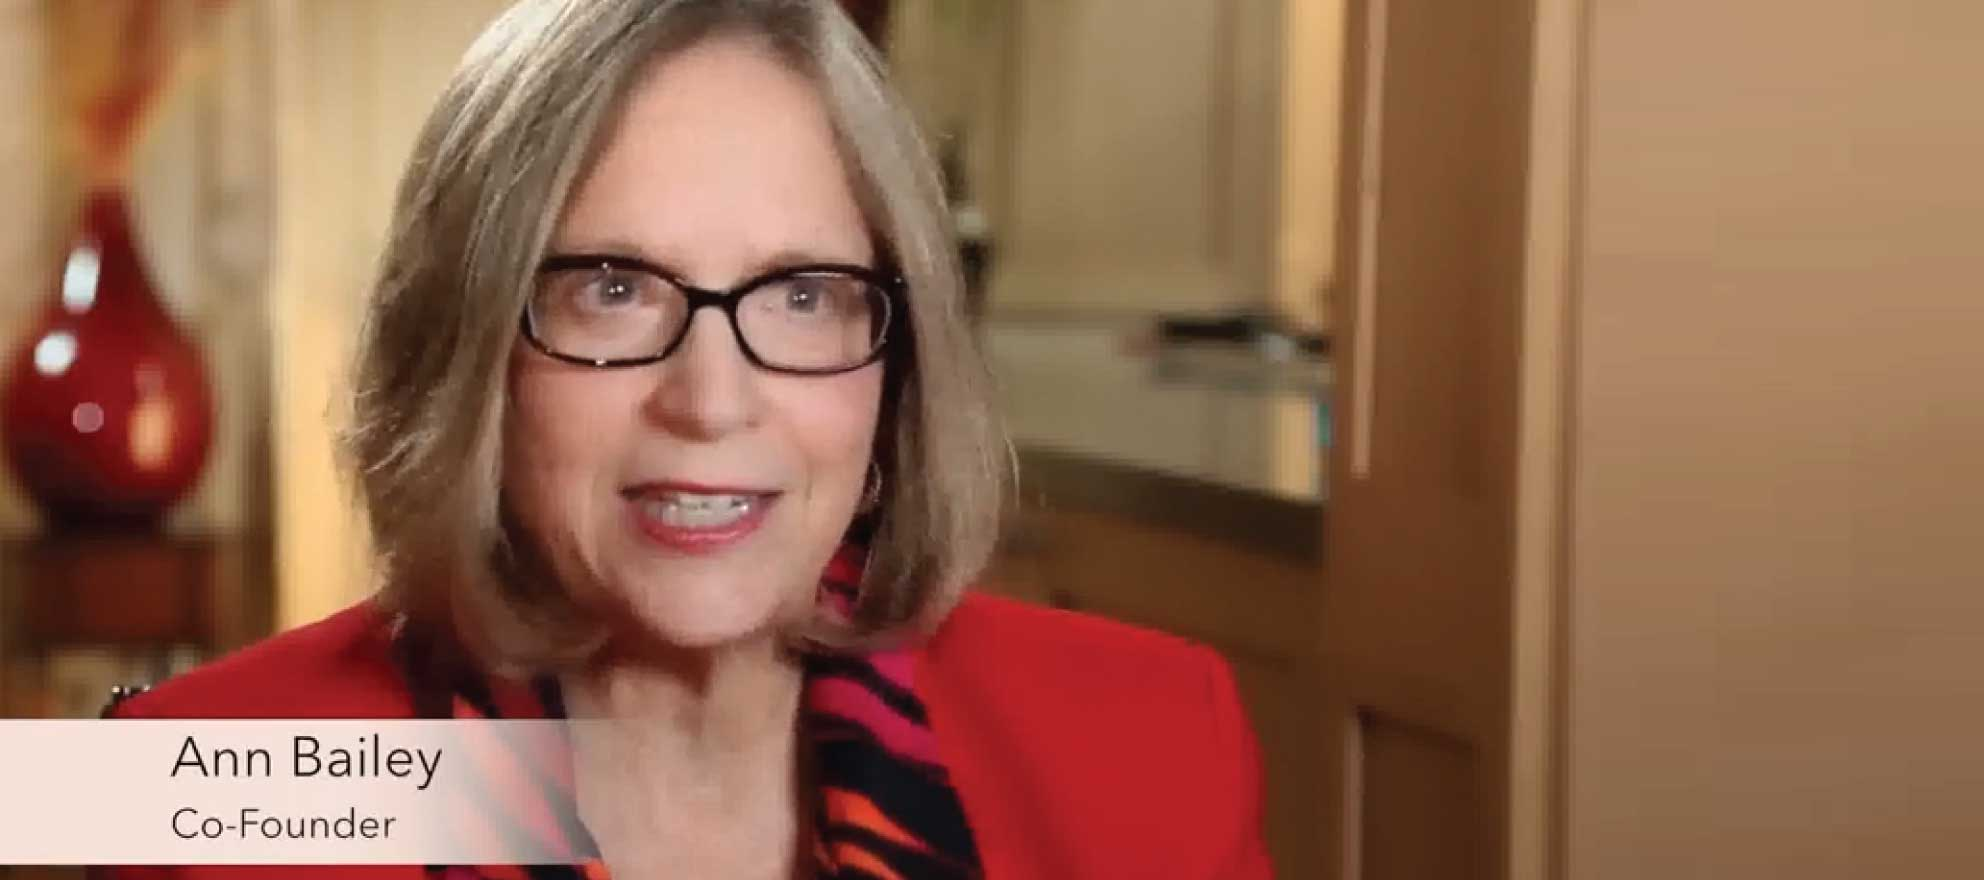 Ann Bailey a leader in more ways than one